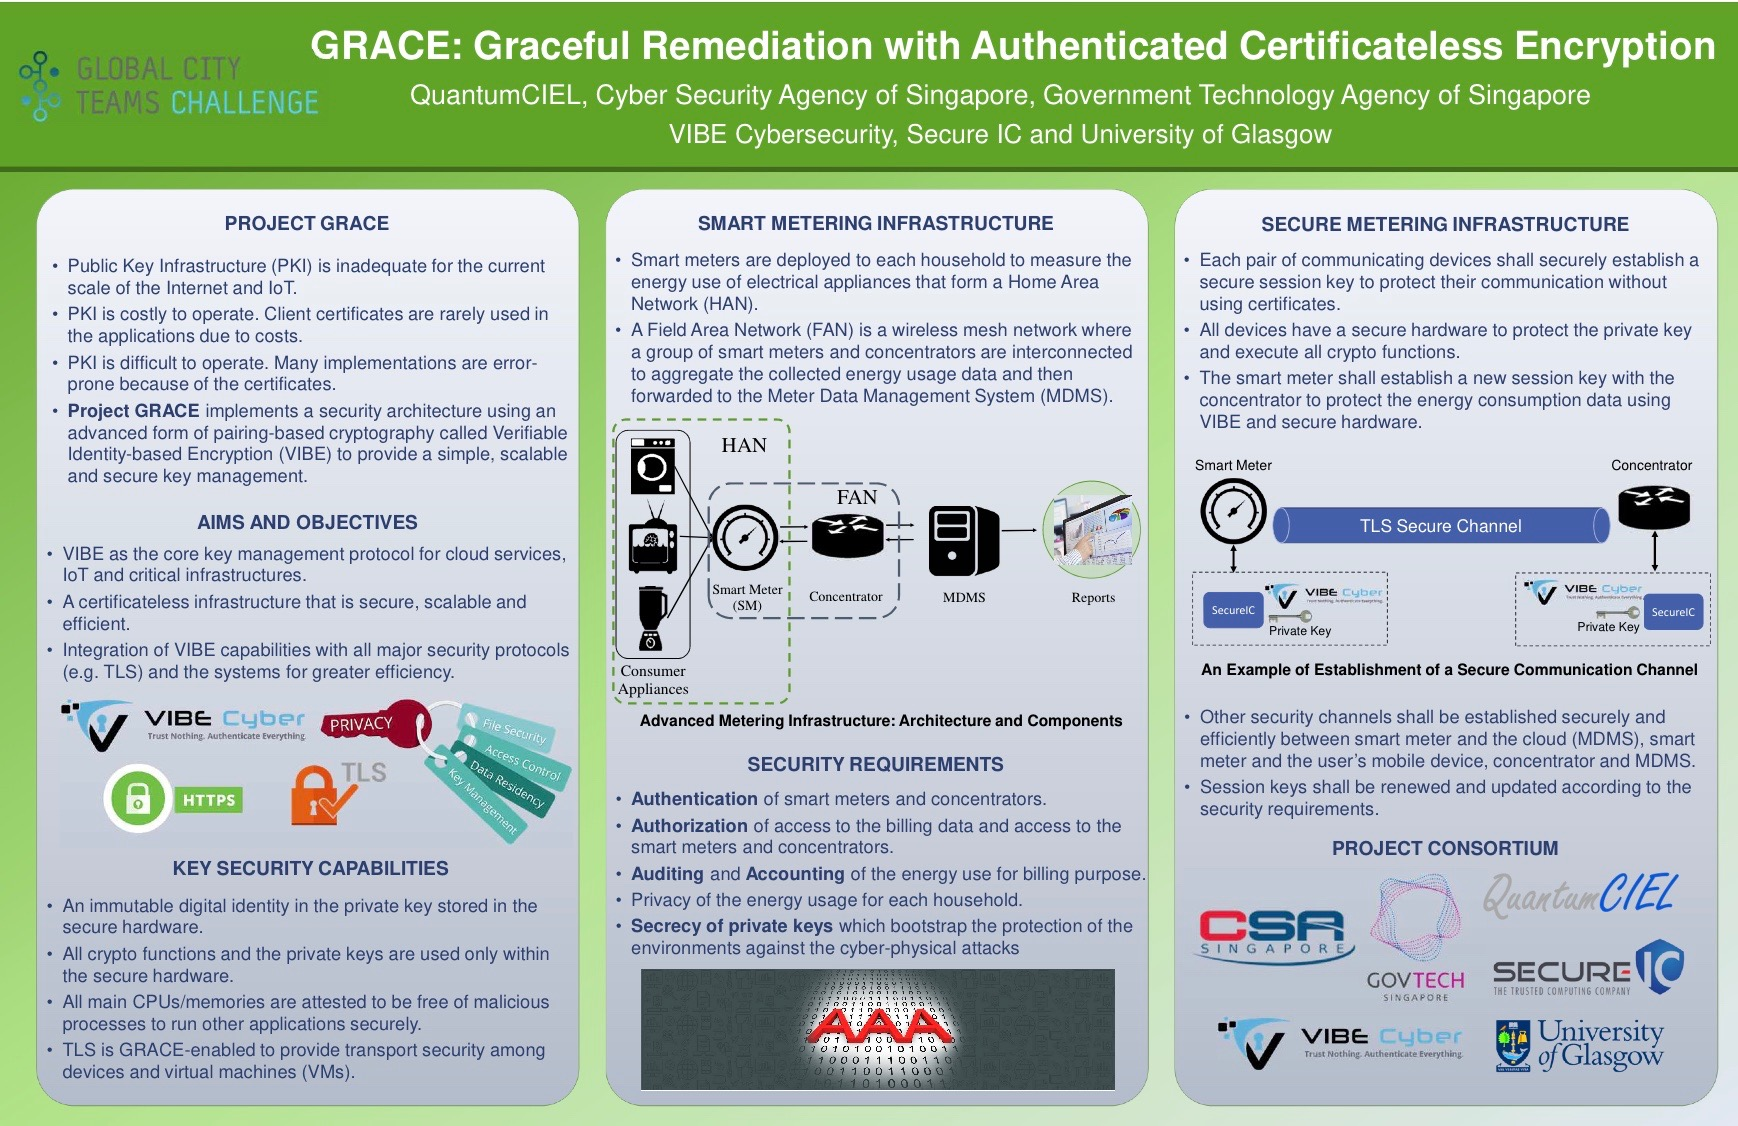 GRACE: Graceful Remediation with Authenticated Certificateless Encryption